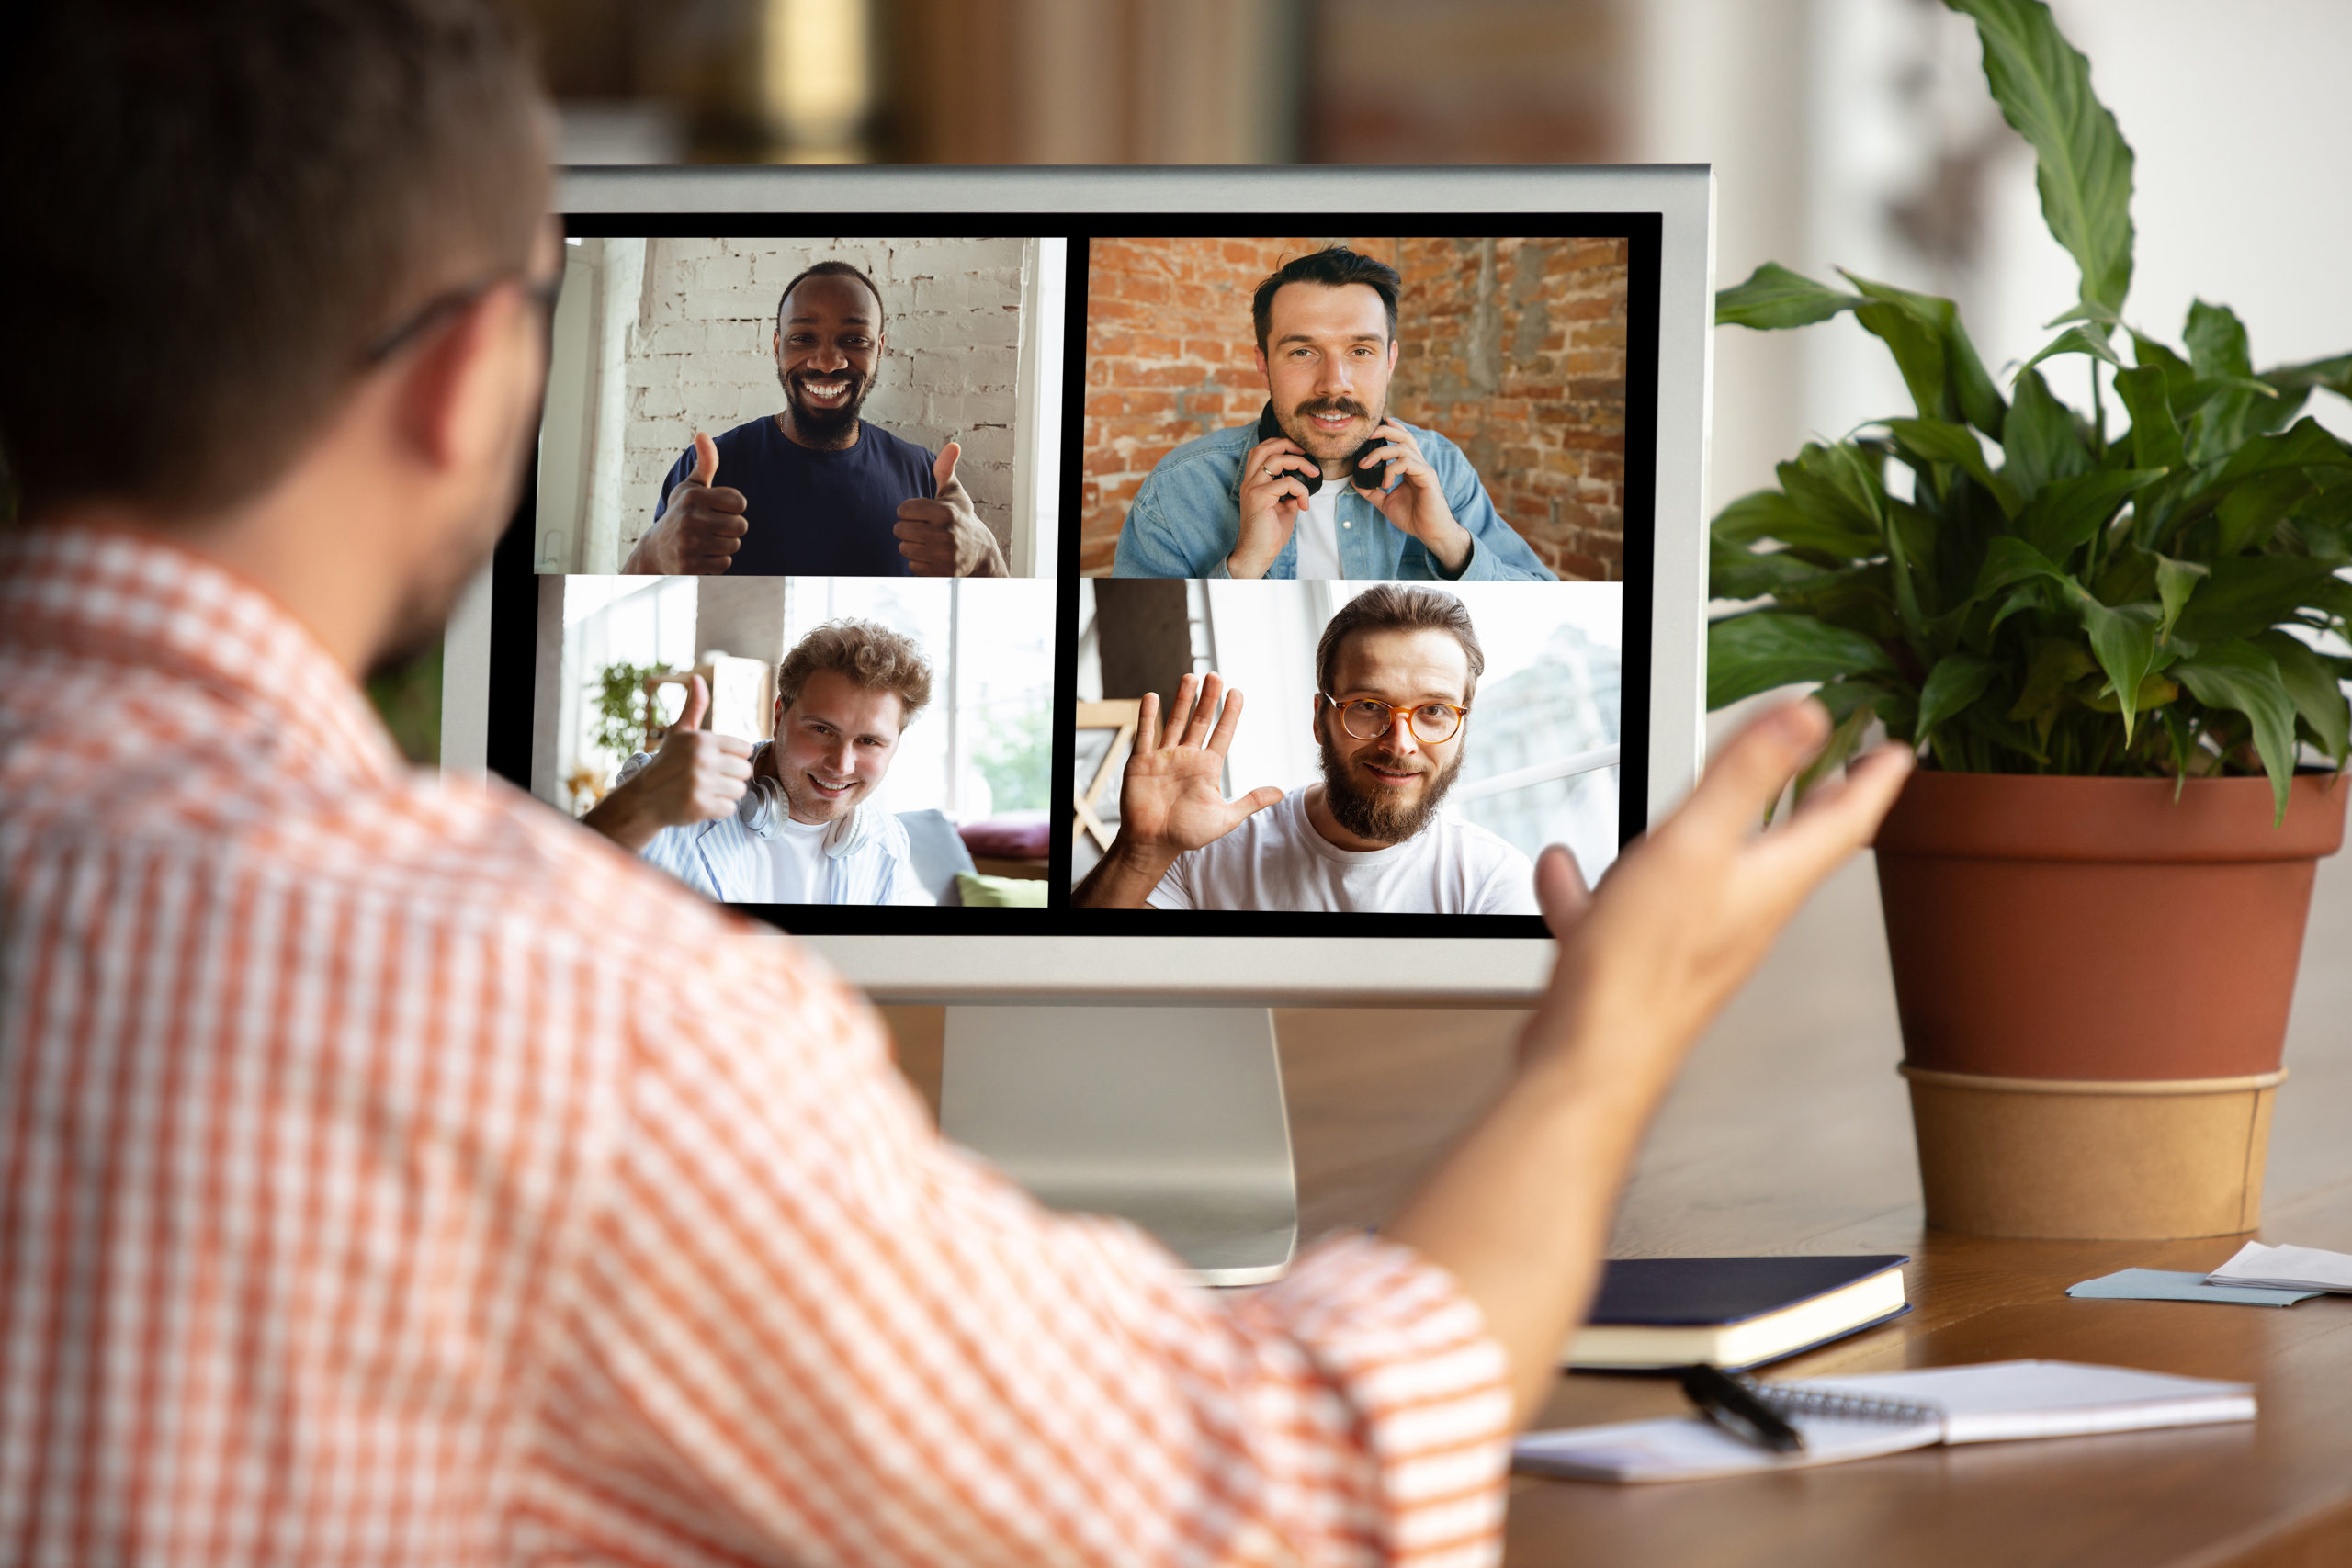 Stay connected with your team when you are learning and working from home